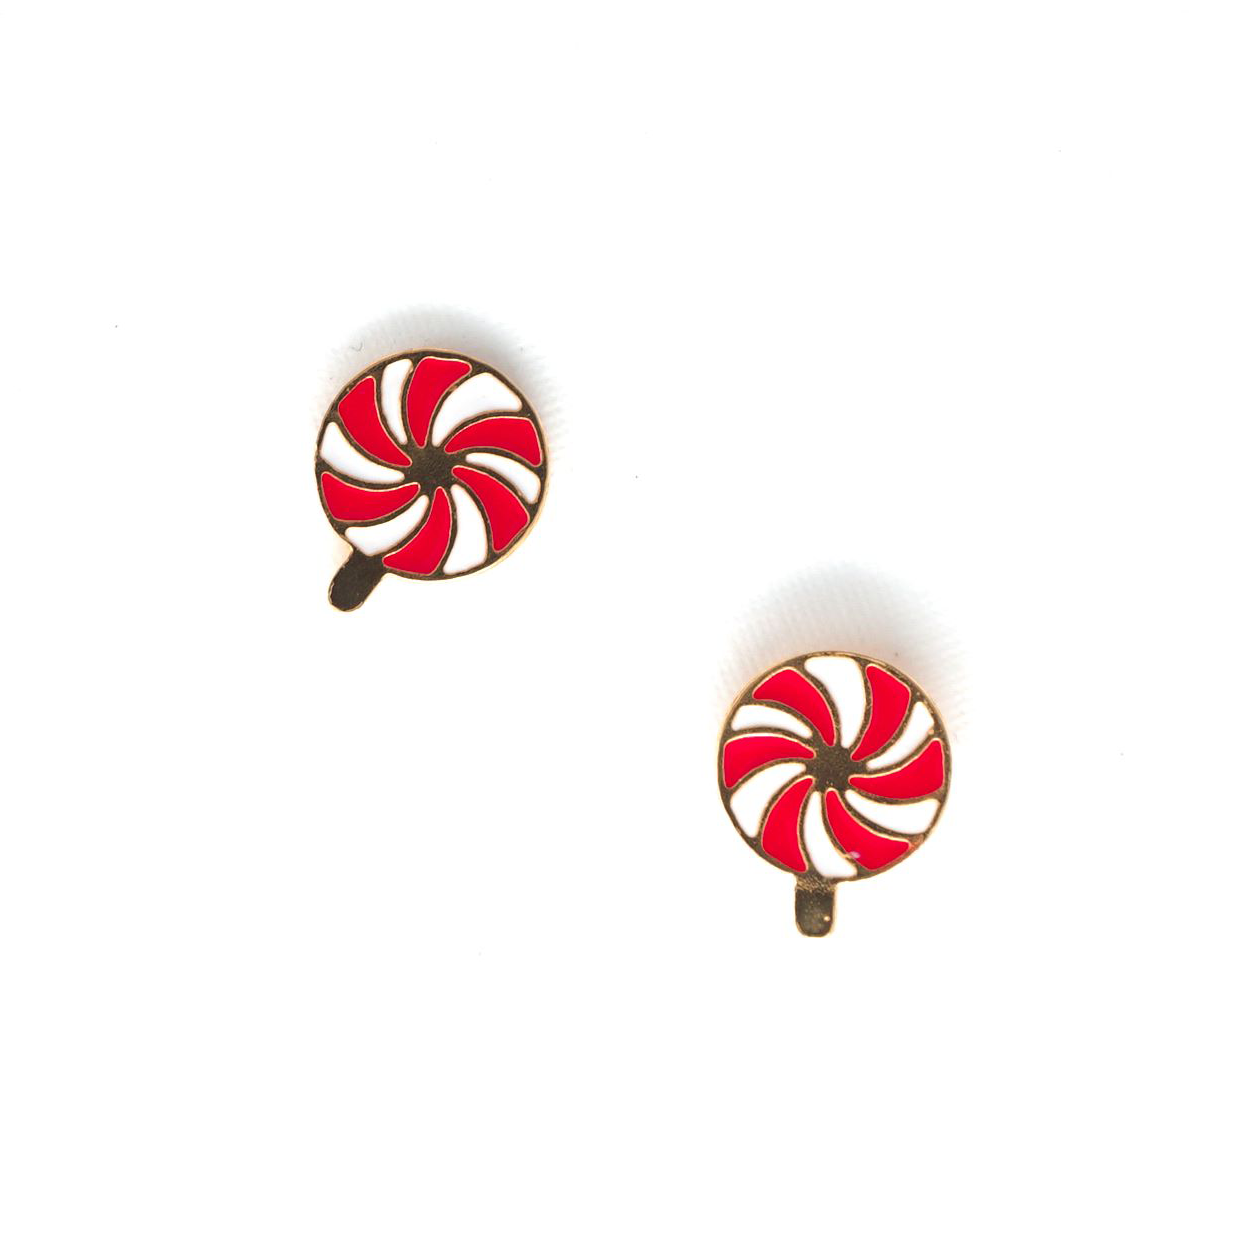 Miss Modi presents Handcrafted Peppermint Lollipop Enamel Stud Earrings